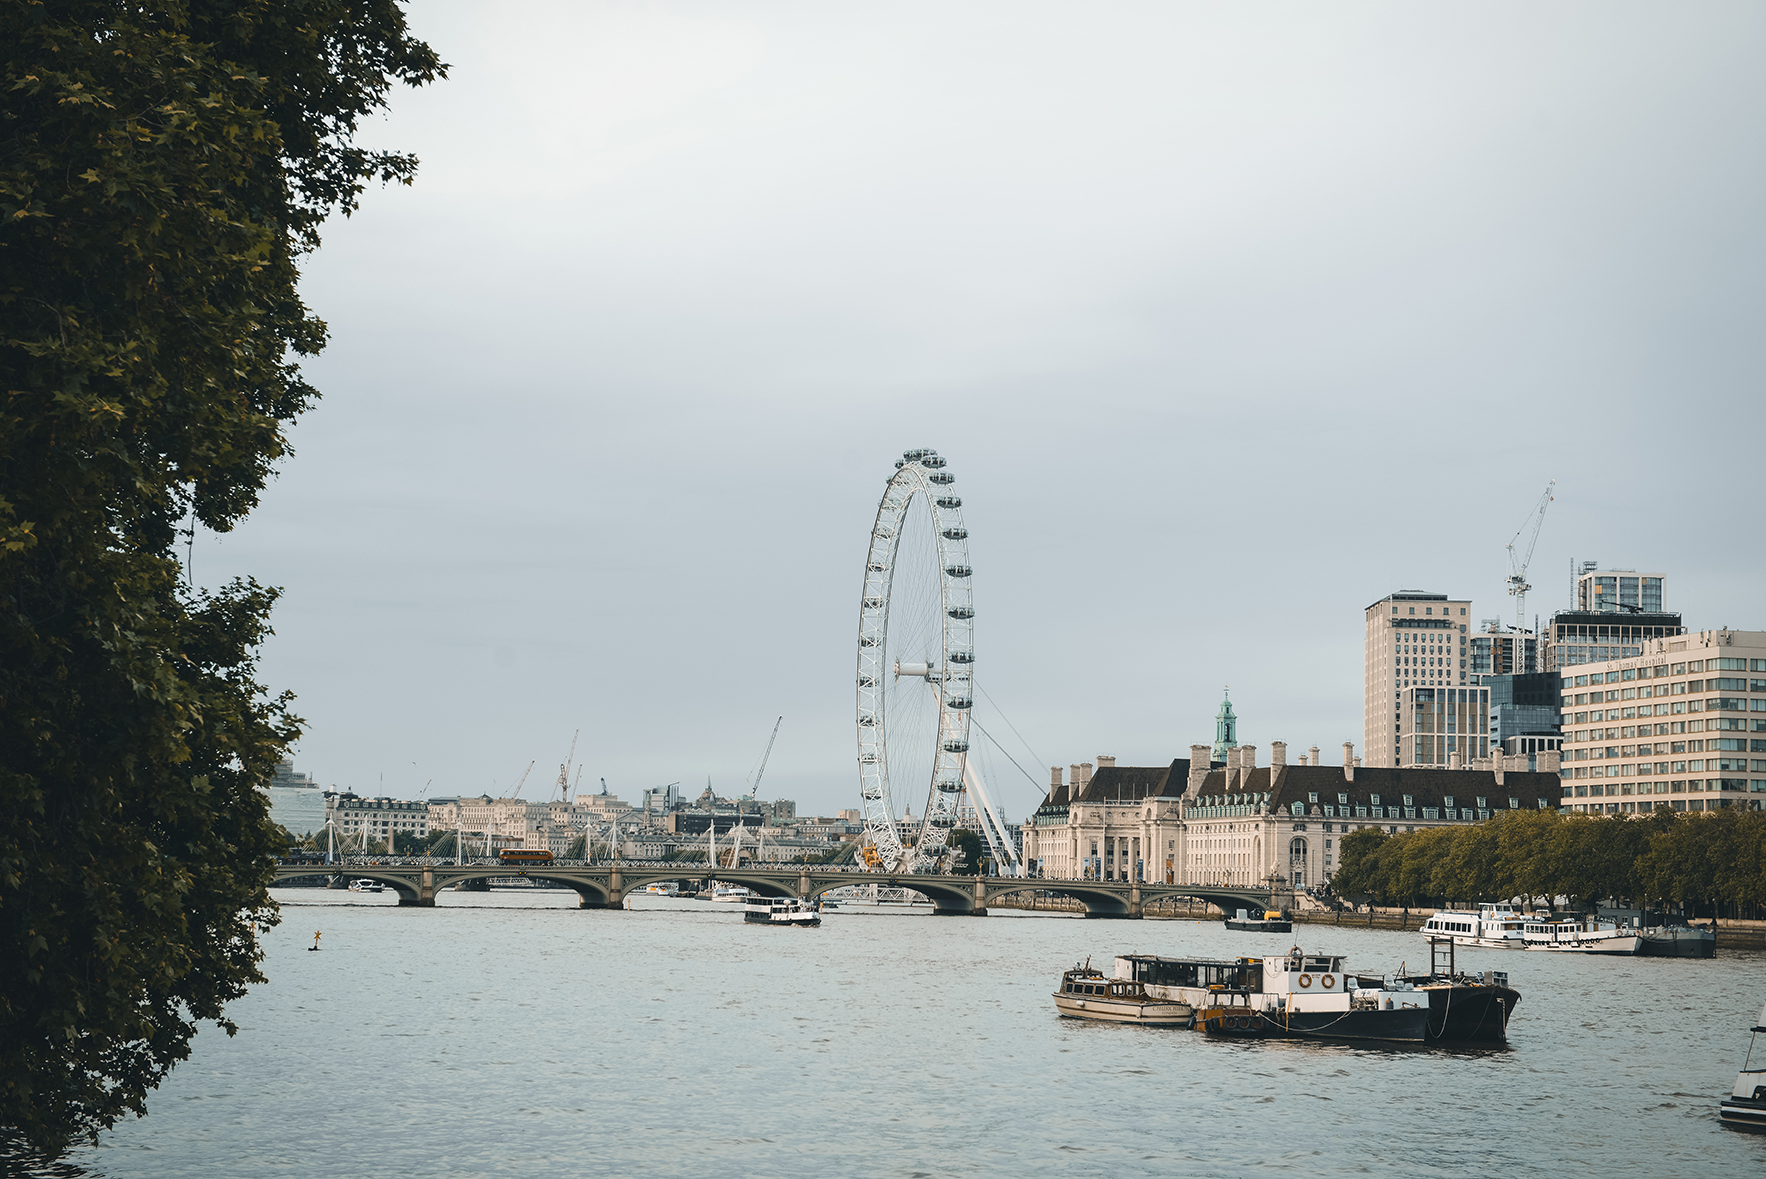 Exploring London by Foot: Eats, Sights & A Spectacle